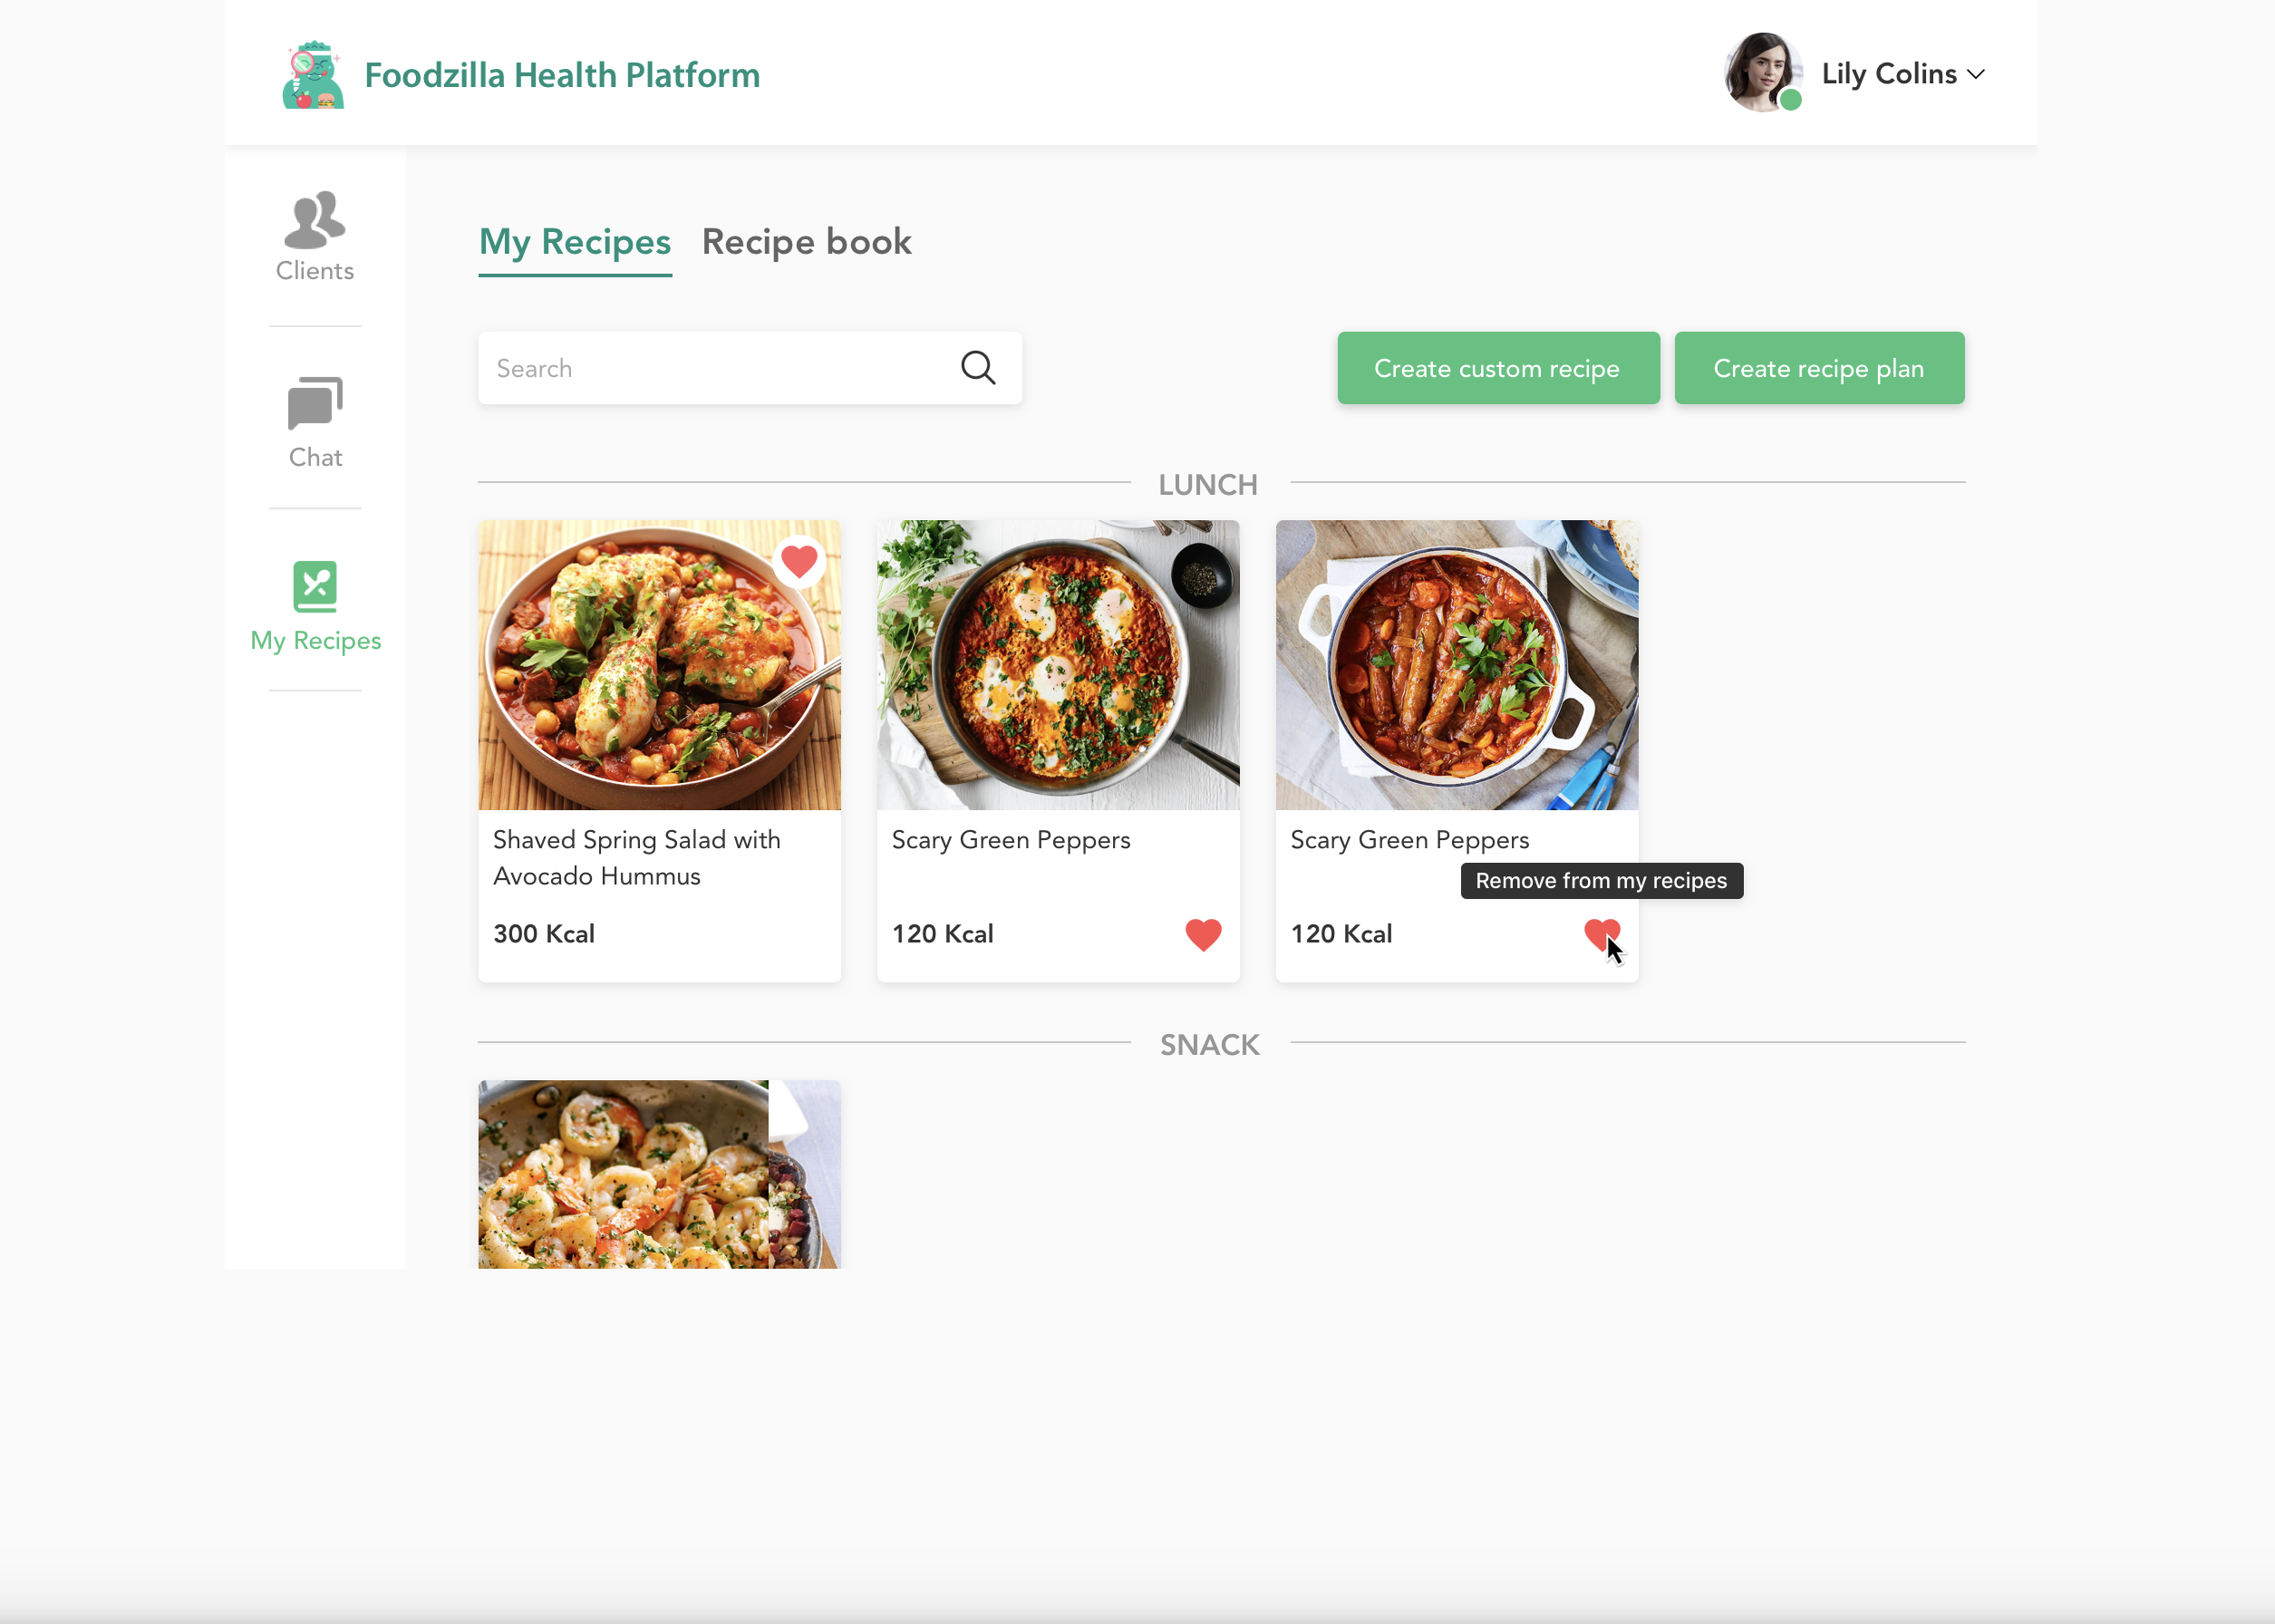 Meal planner feature